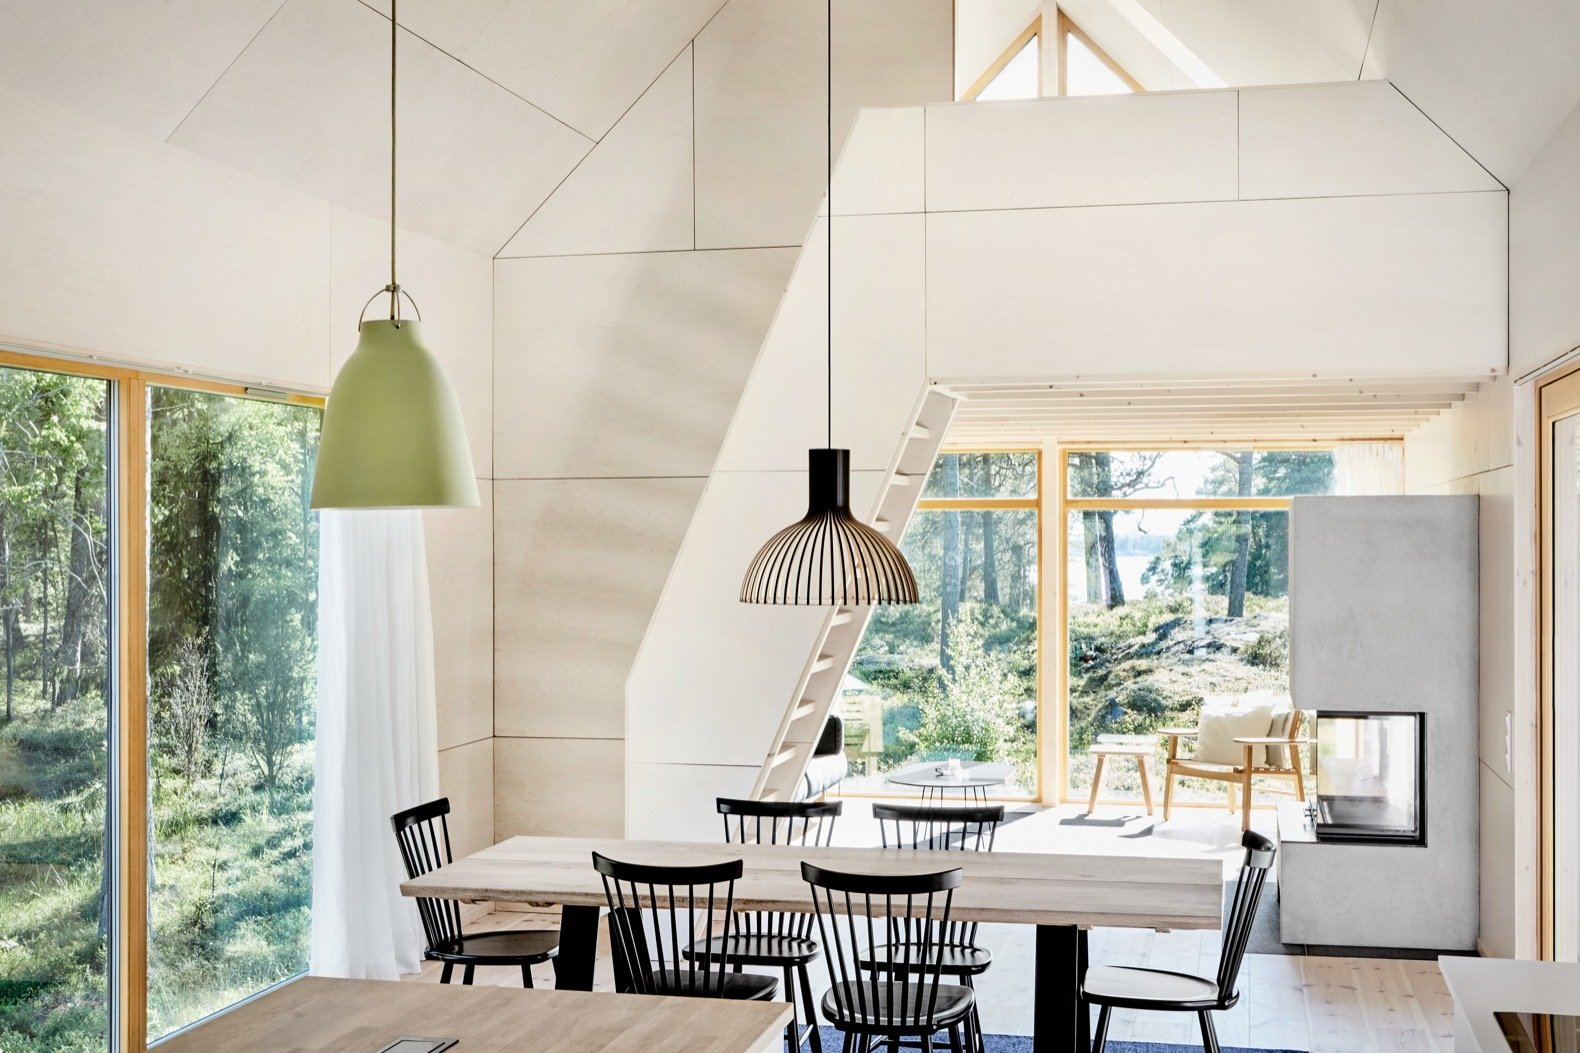 An Inspiring Island Retreat Mixes Scandinavian Style With Japanese Simplicity